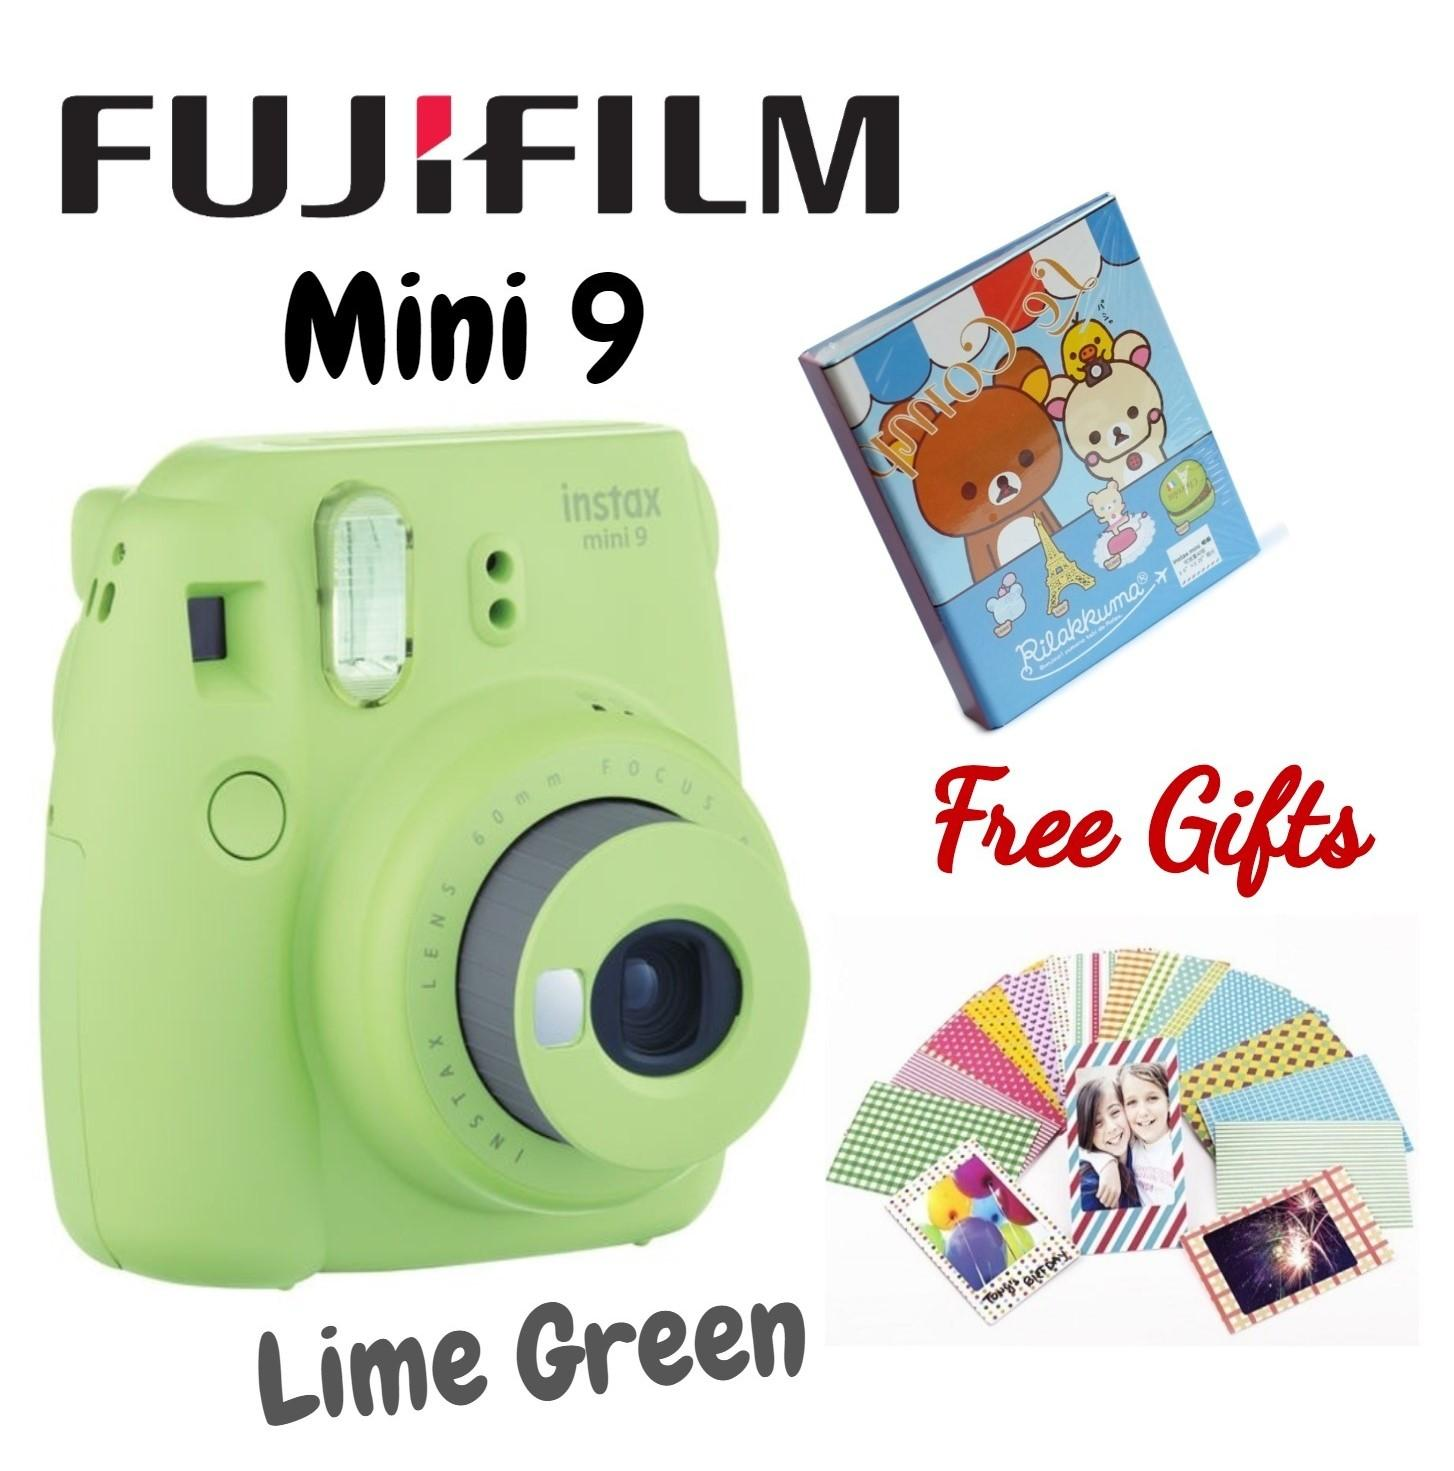 Buy Fujifilm Intax Camera Dslr Lazada X T2 Body Only Xf 56mm F12 Instax Mini 9 Instant Film Lime Green With Free 1 Album And